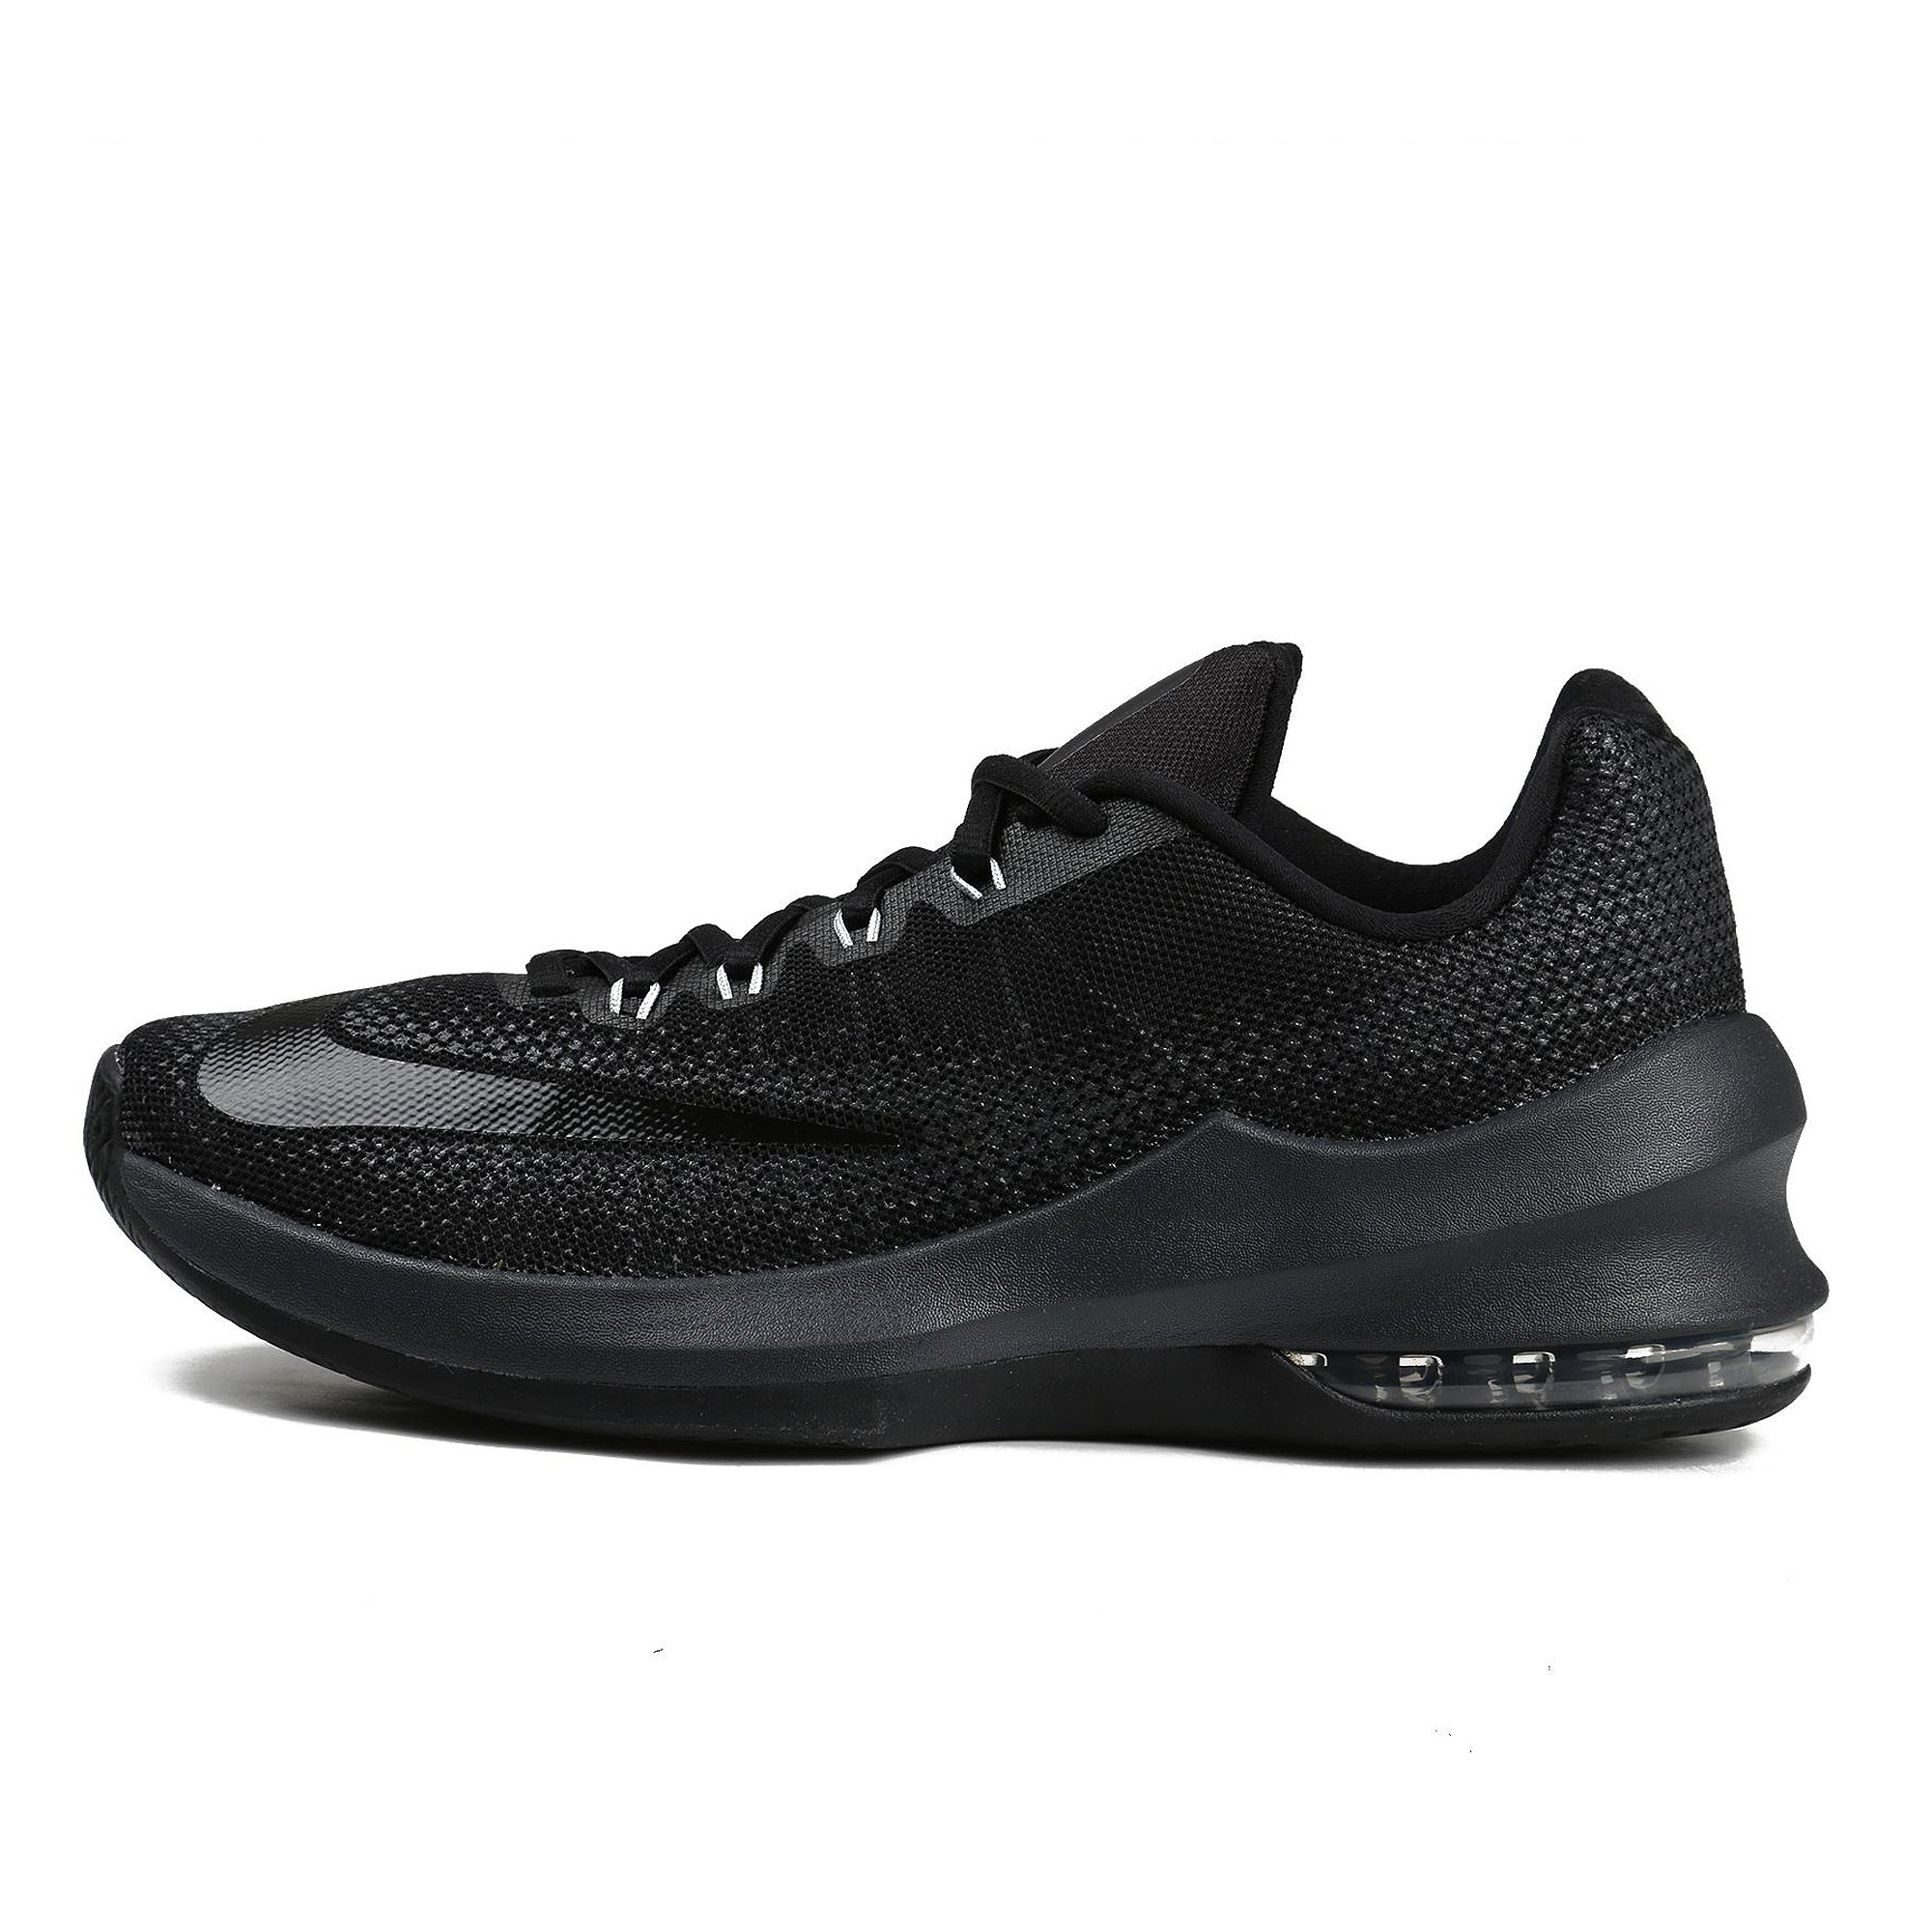 outlet store sale bafc0 b0eb0 Galleon - NIKE Men s Air Max Infuriate Low Basketball Shoe Black Anthracite Dark  Grey Size 15 M US